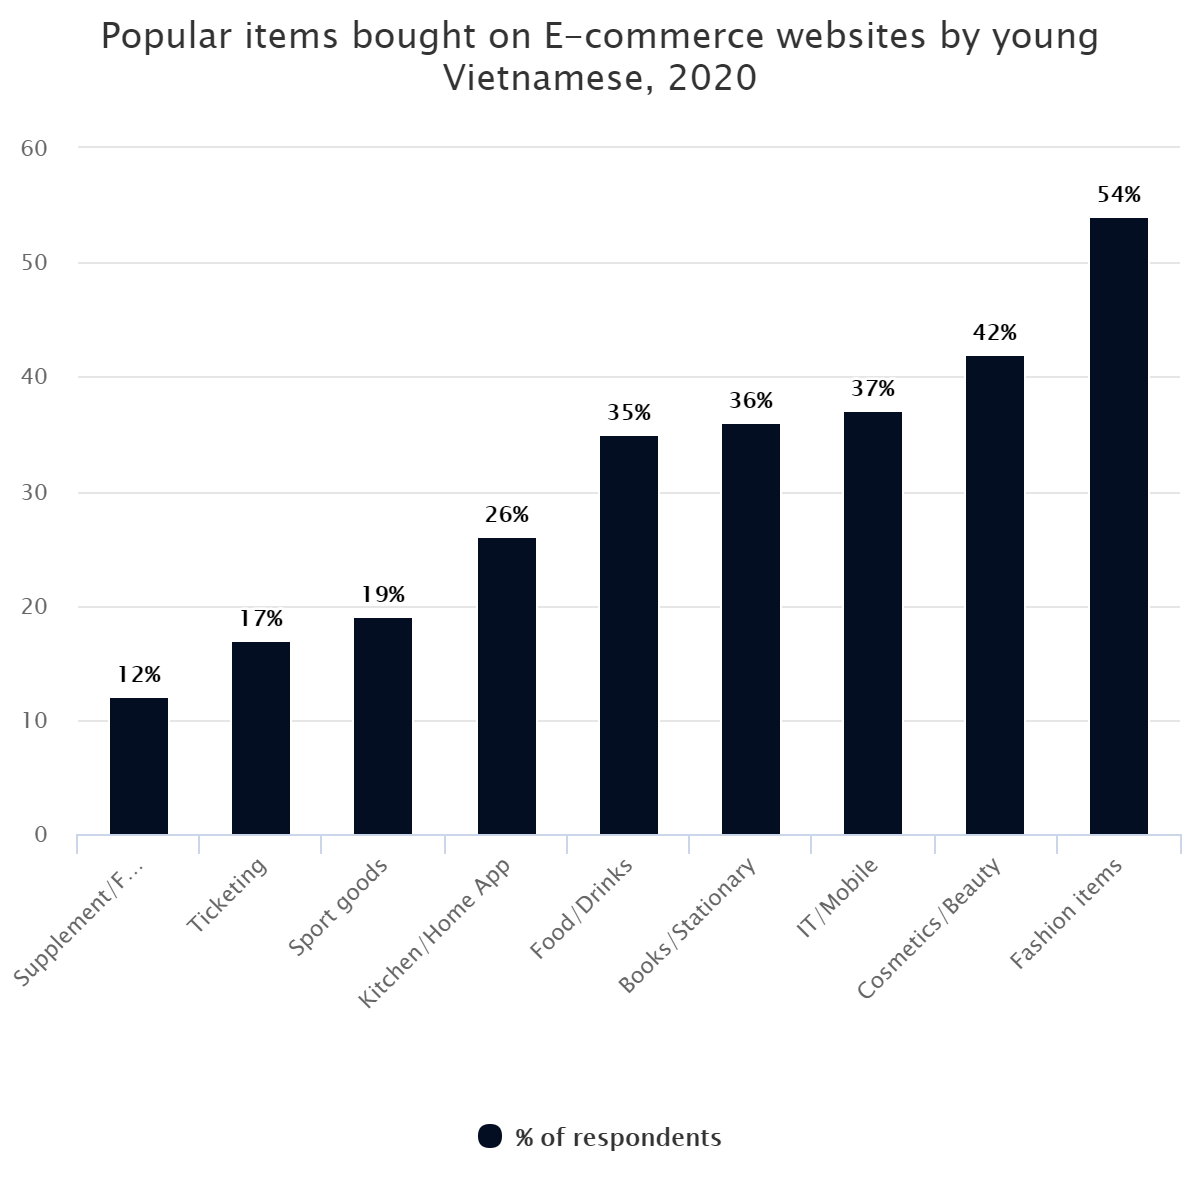 Popular items bought on E-commerce websites by young Vietnamese, 2020